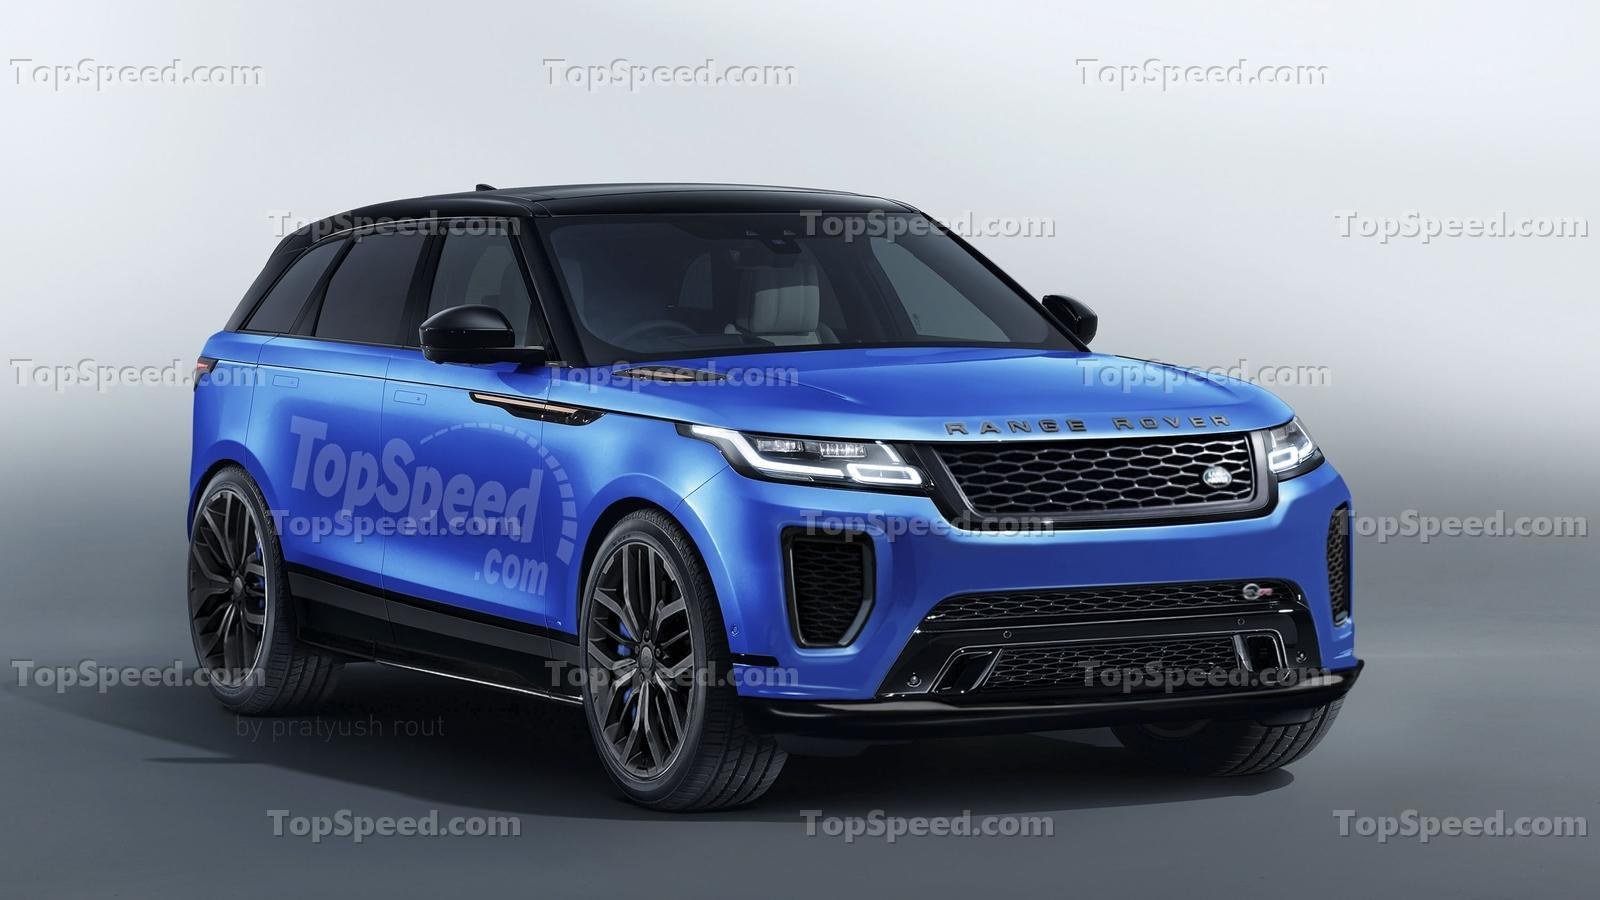 2019 land rover range rover velar svr review top speed. Black Bedroom Furniture Sets. Home Design Ideas